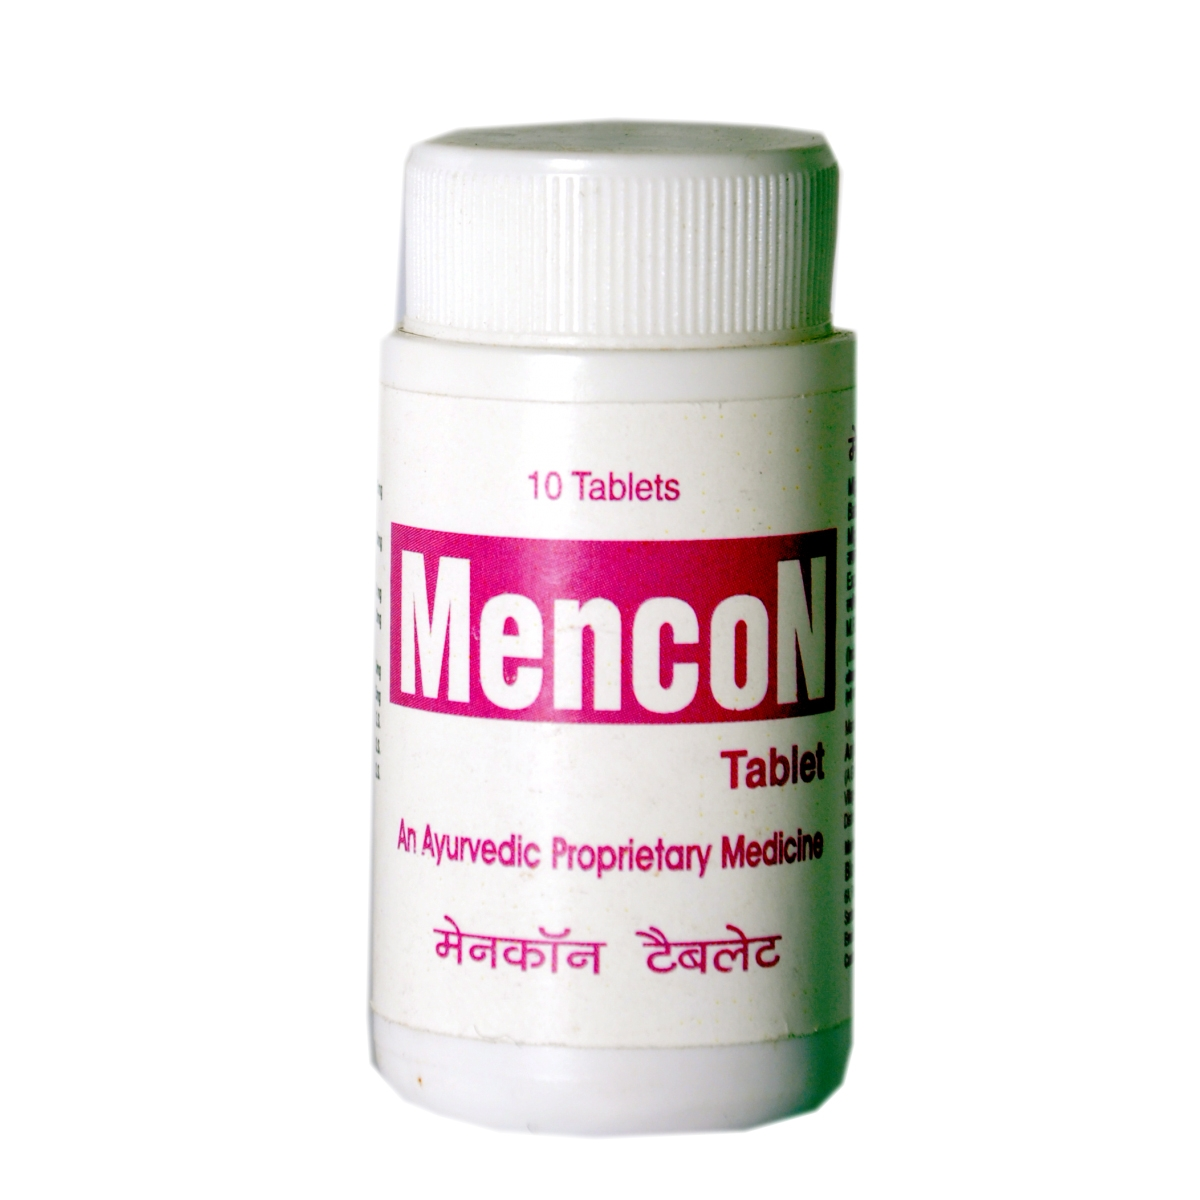 Mencon Tablet In Panchmahal